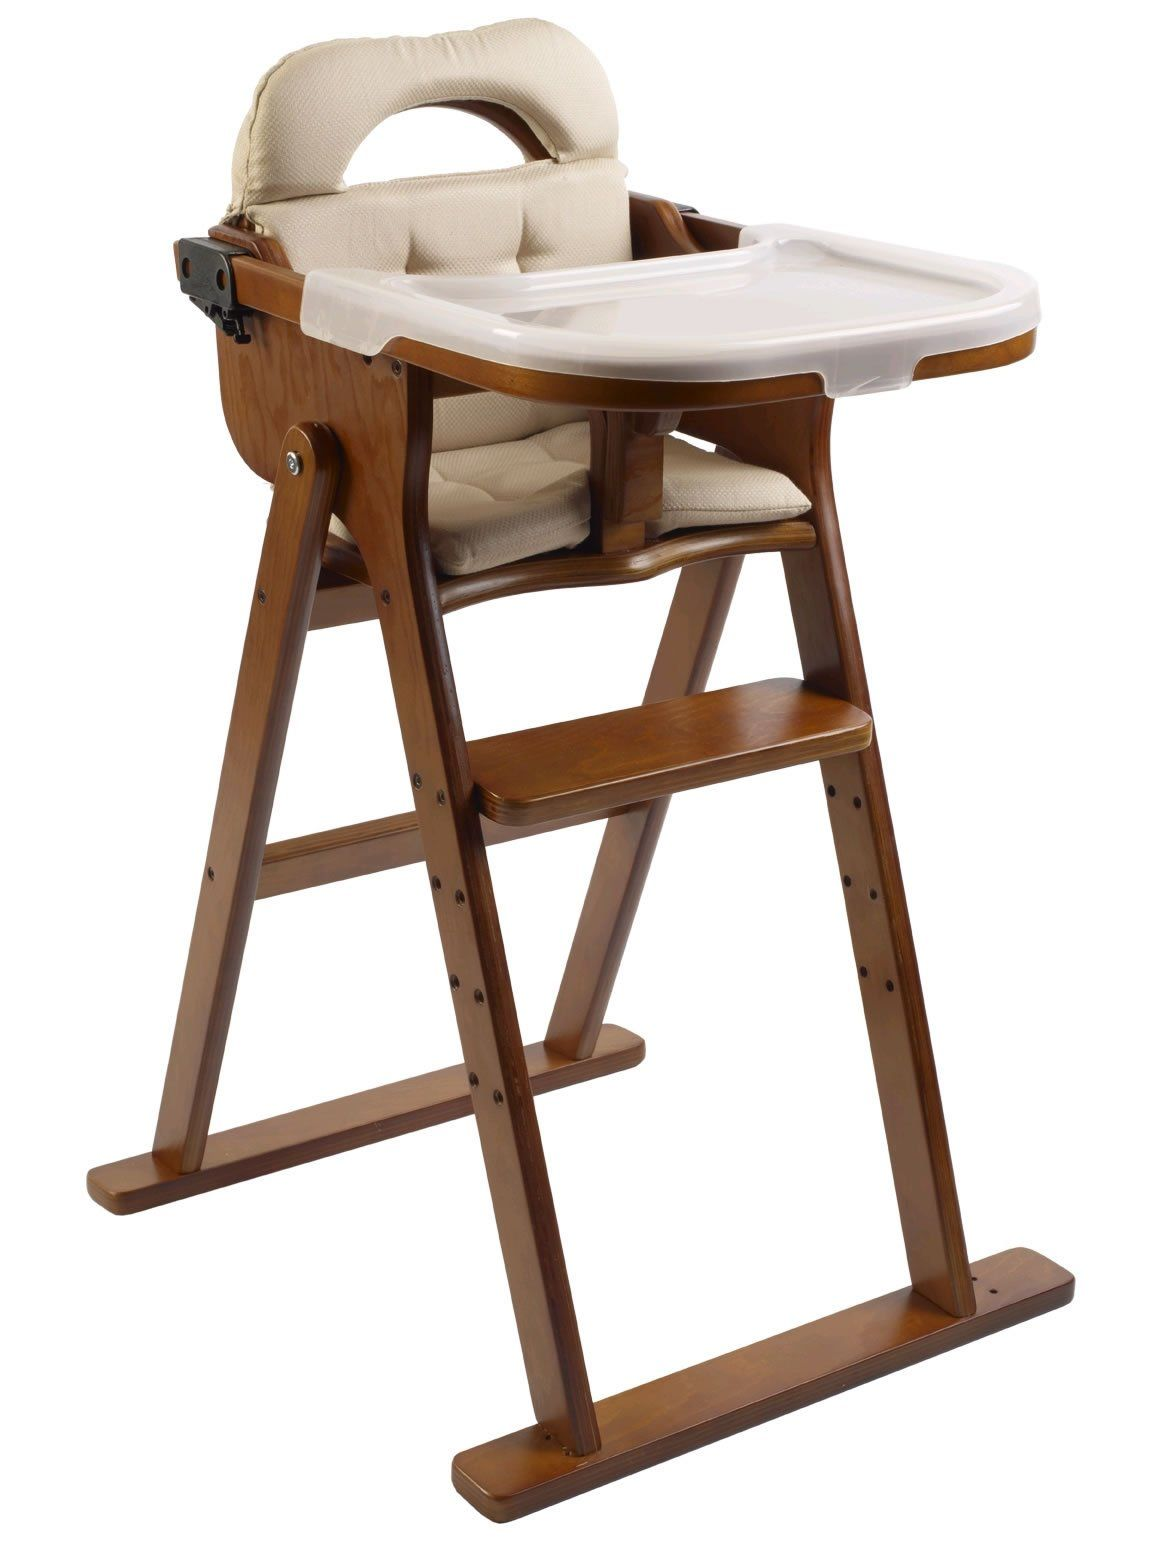 I Have Been Looking For This High Chair On Craigslist For